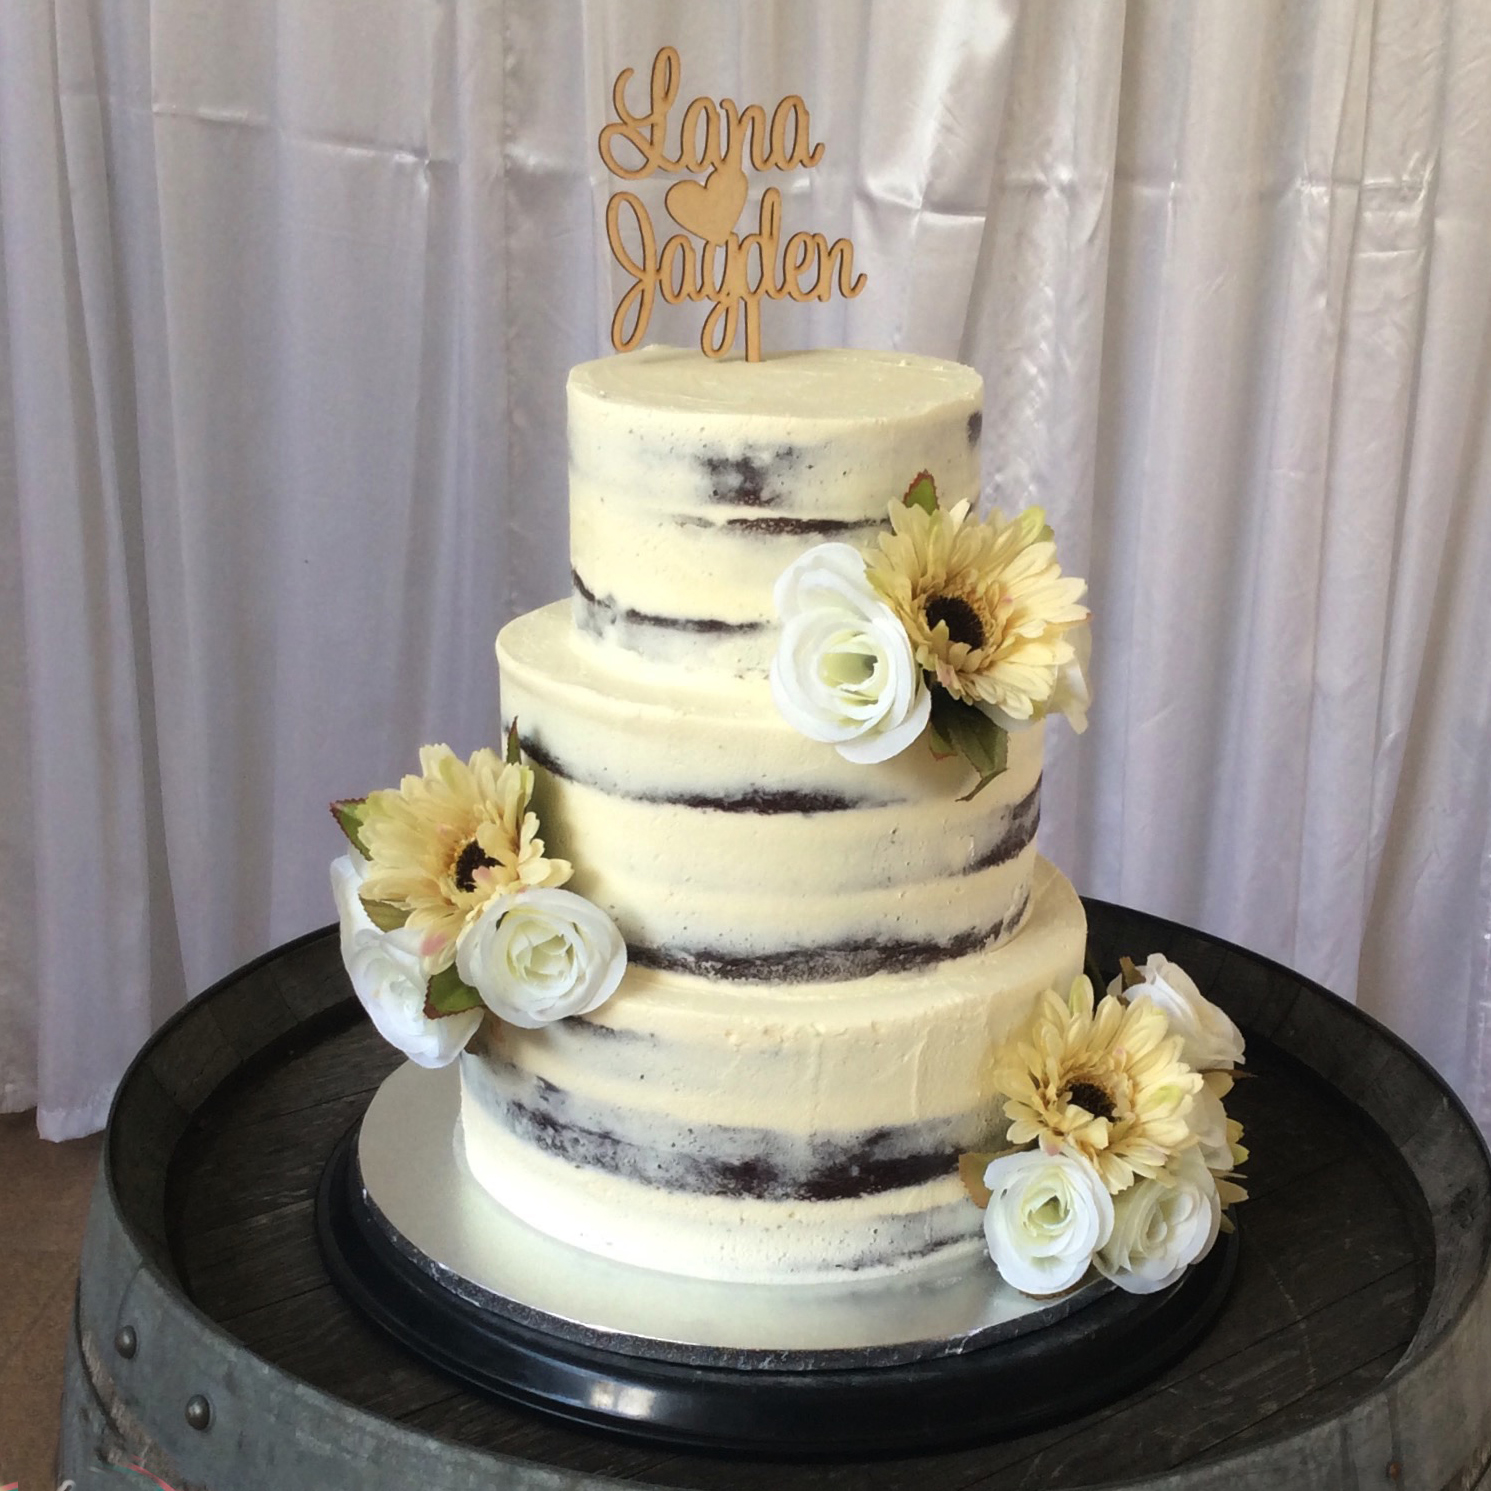 Wedding Decorations Gold Coast: Wedding Cakes Gold Coast